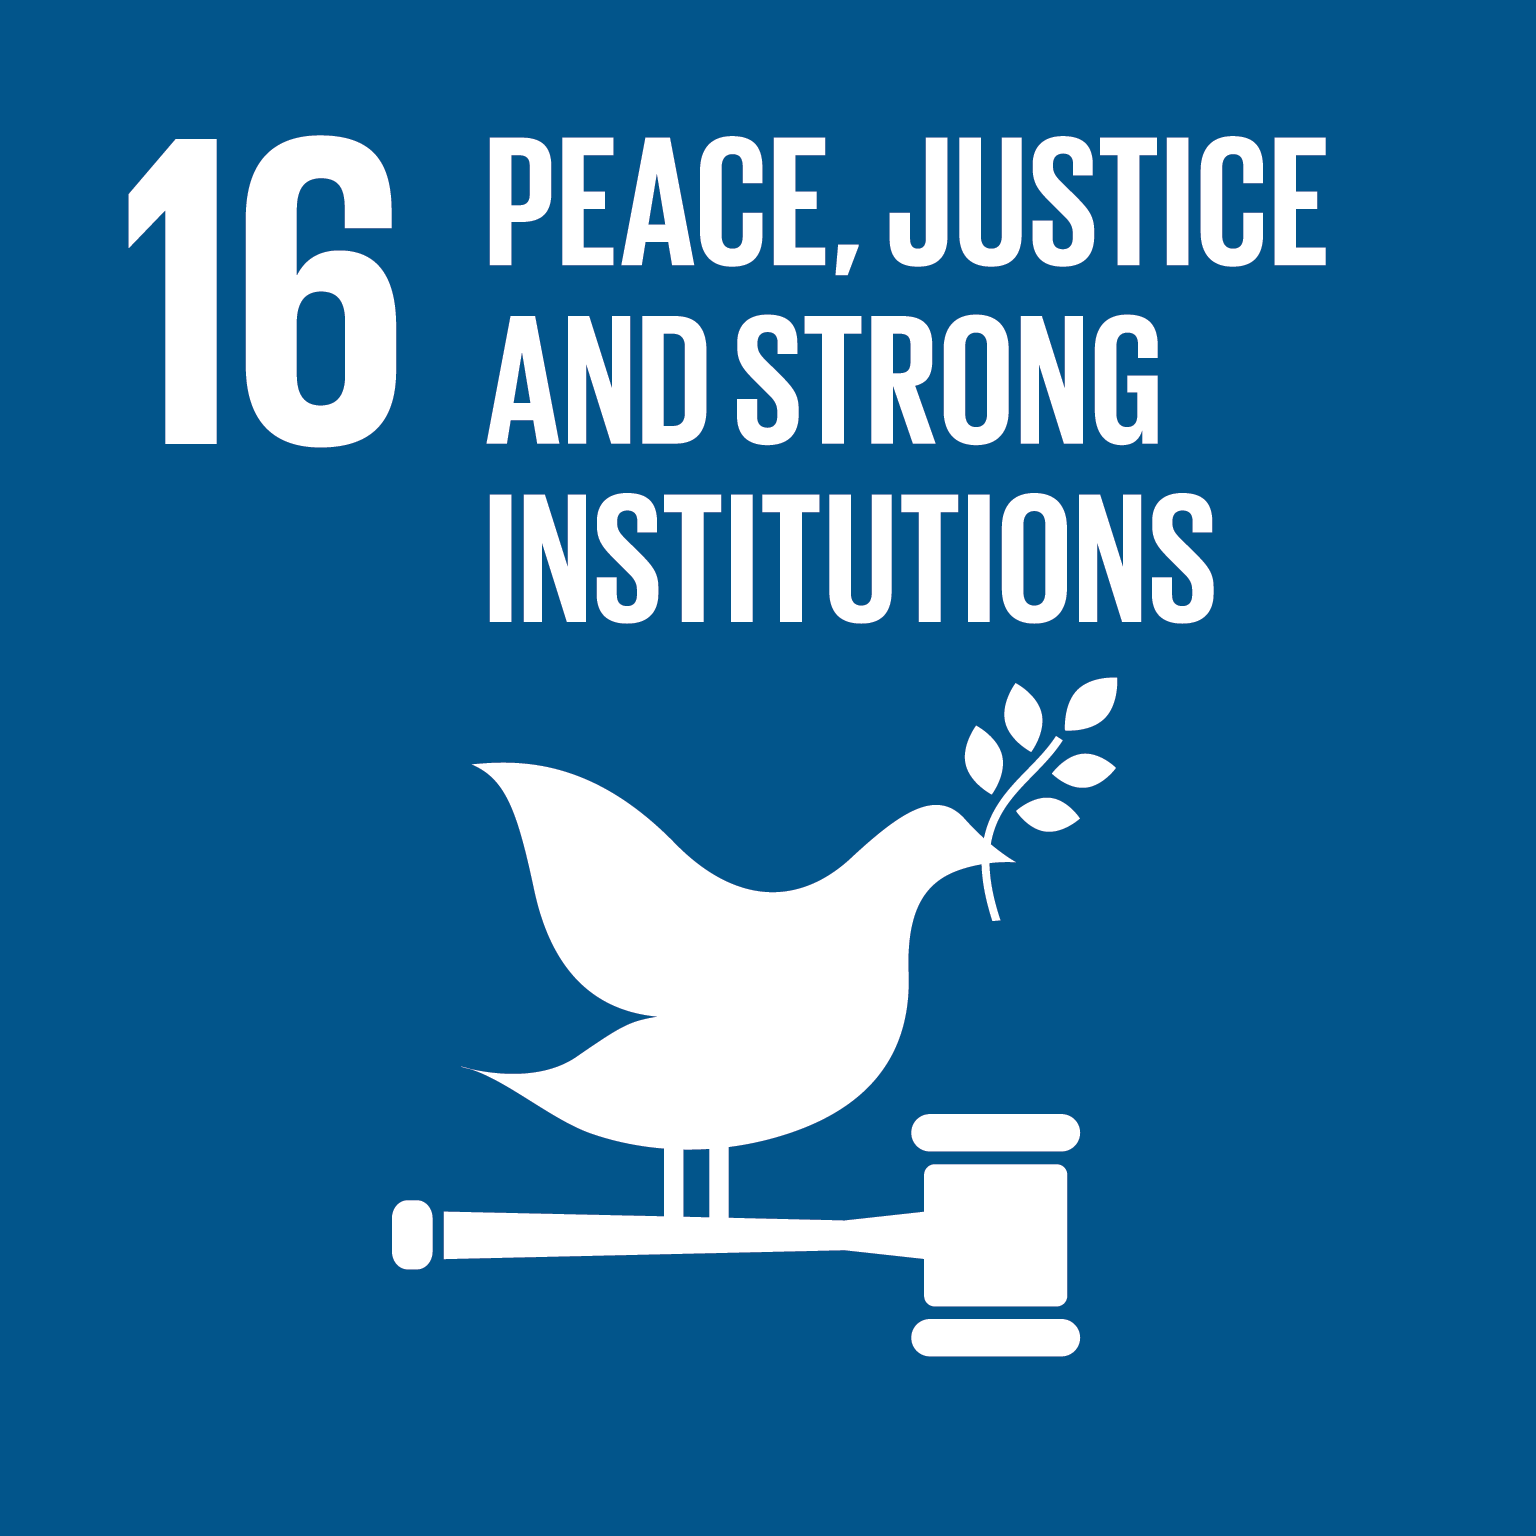 Sustainable Development Goal 16 icon